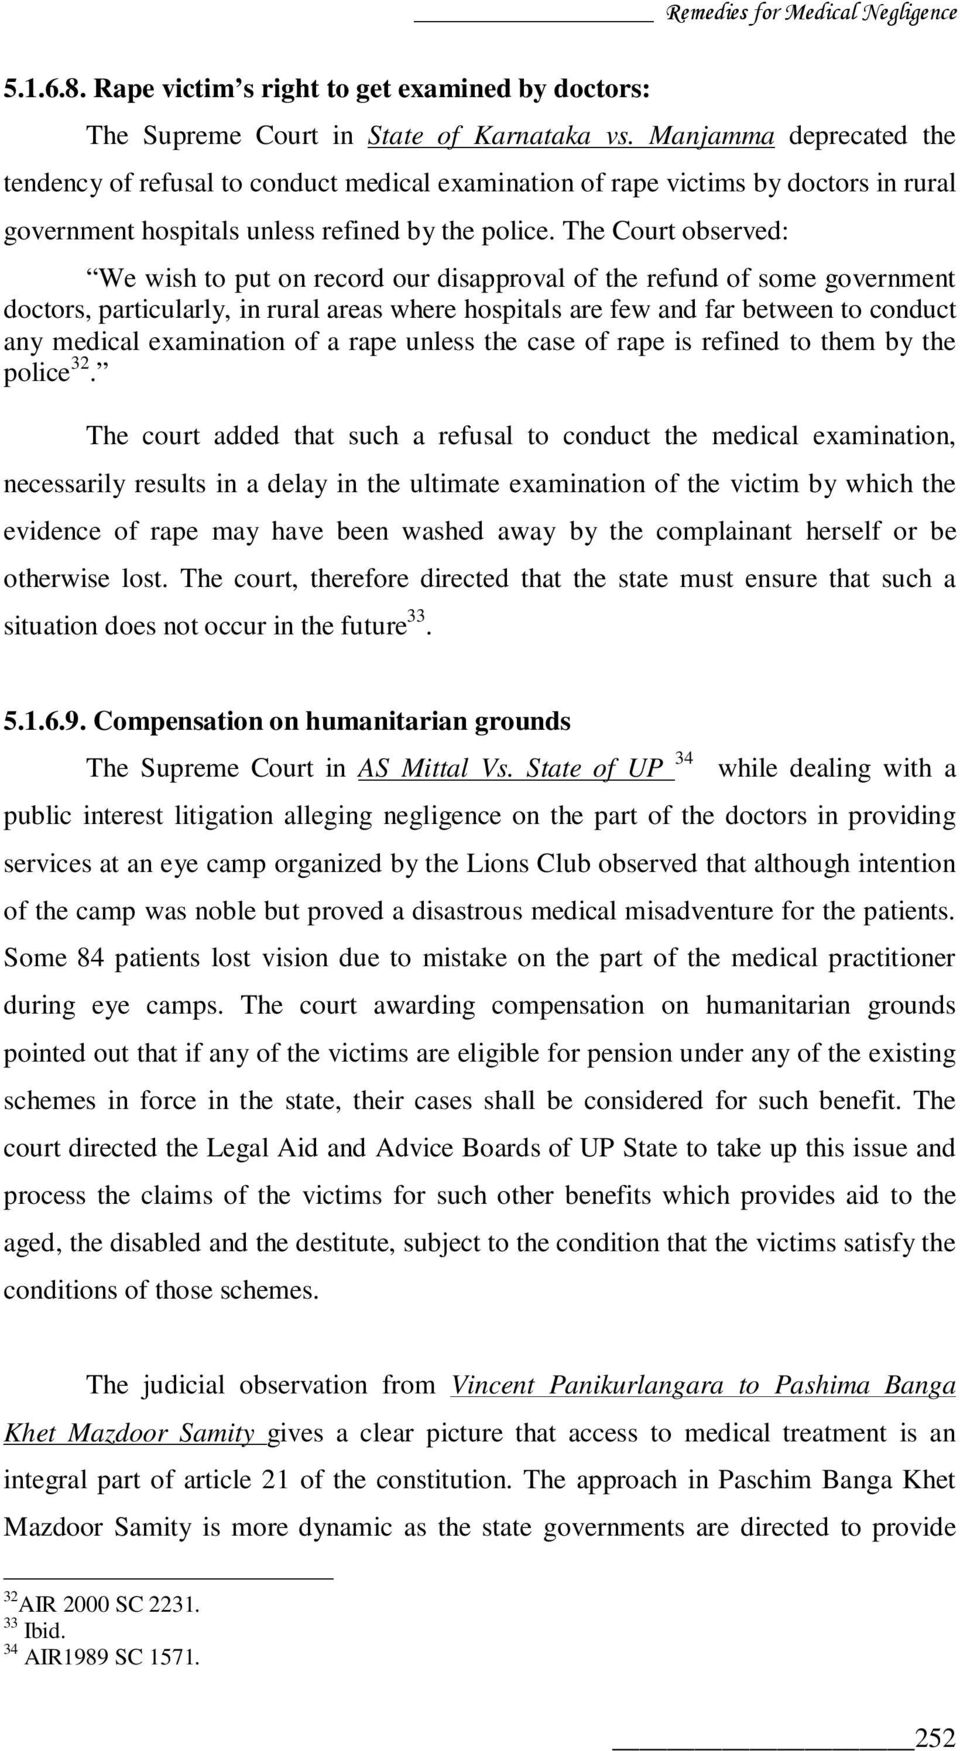 The Court observed: We wish to put on record our disapproval of the refund of some government doctors, particularly, in rural areas where hospitals are few and far between to conduct any medical